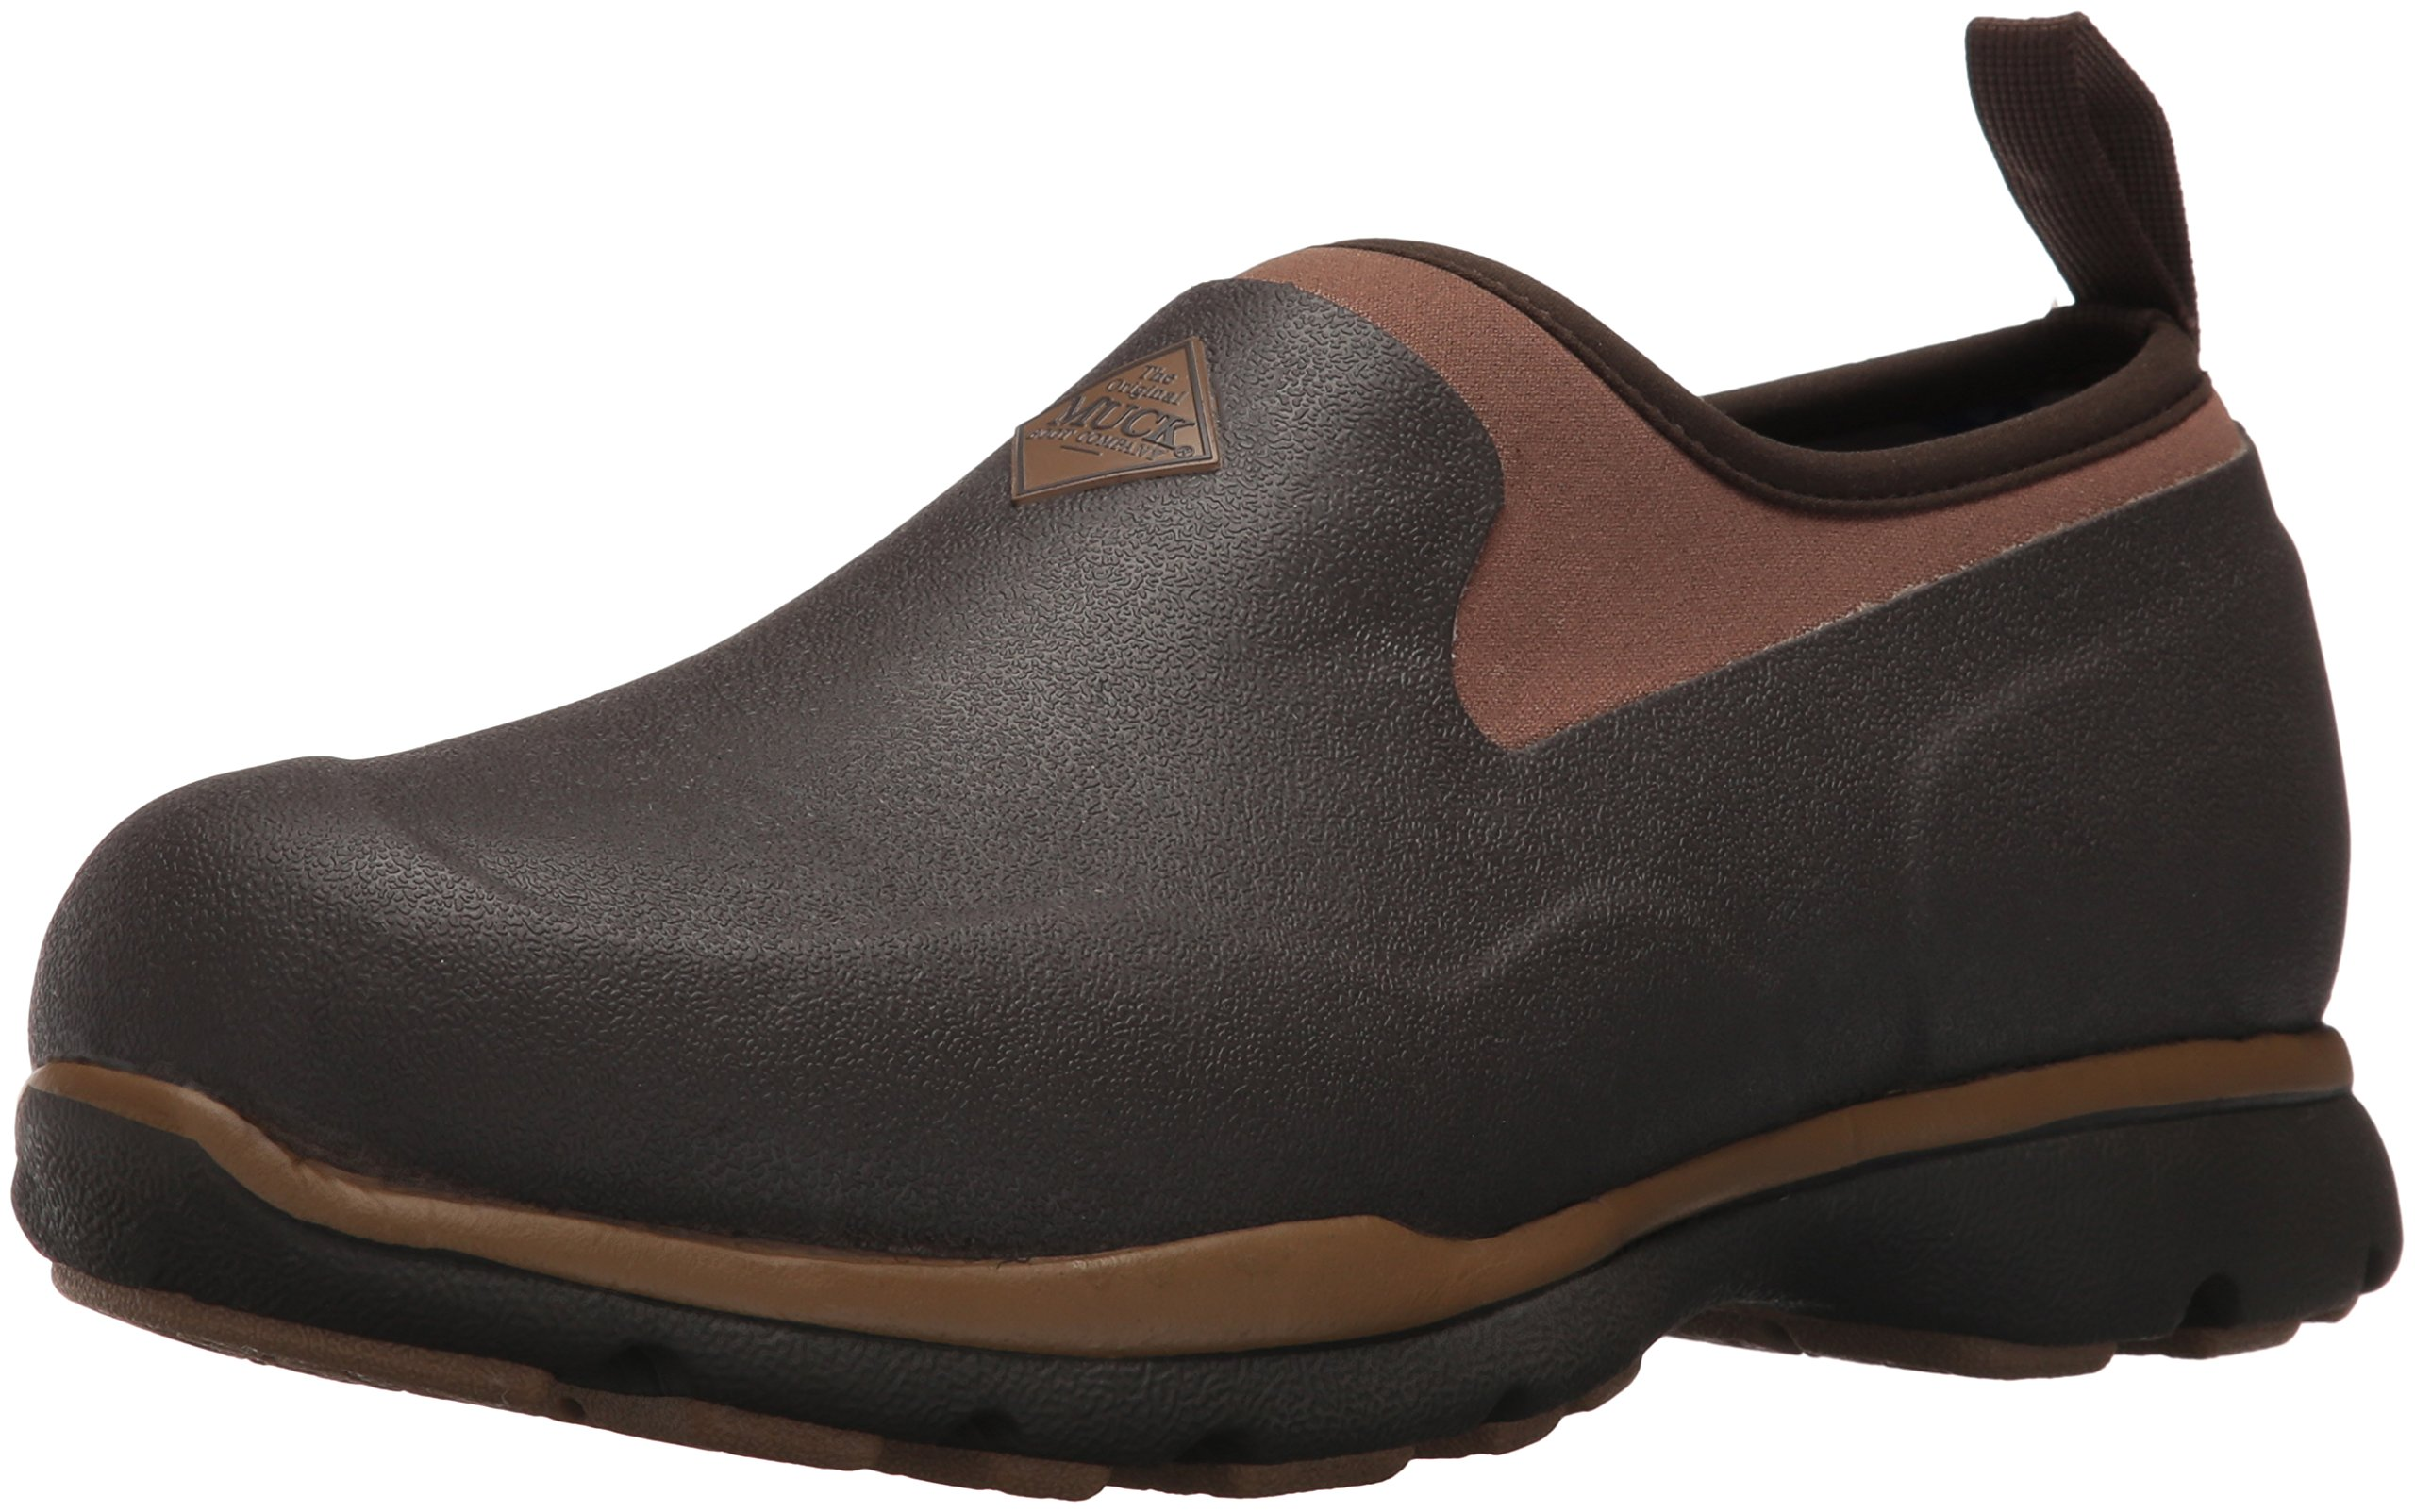 Muck Excursion Pro Men's Rubber Shoes by Muck Boot